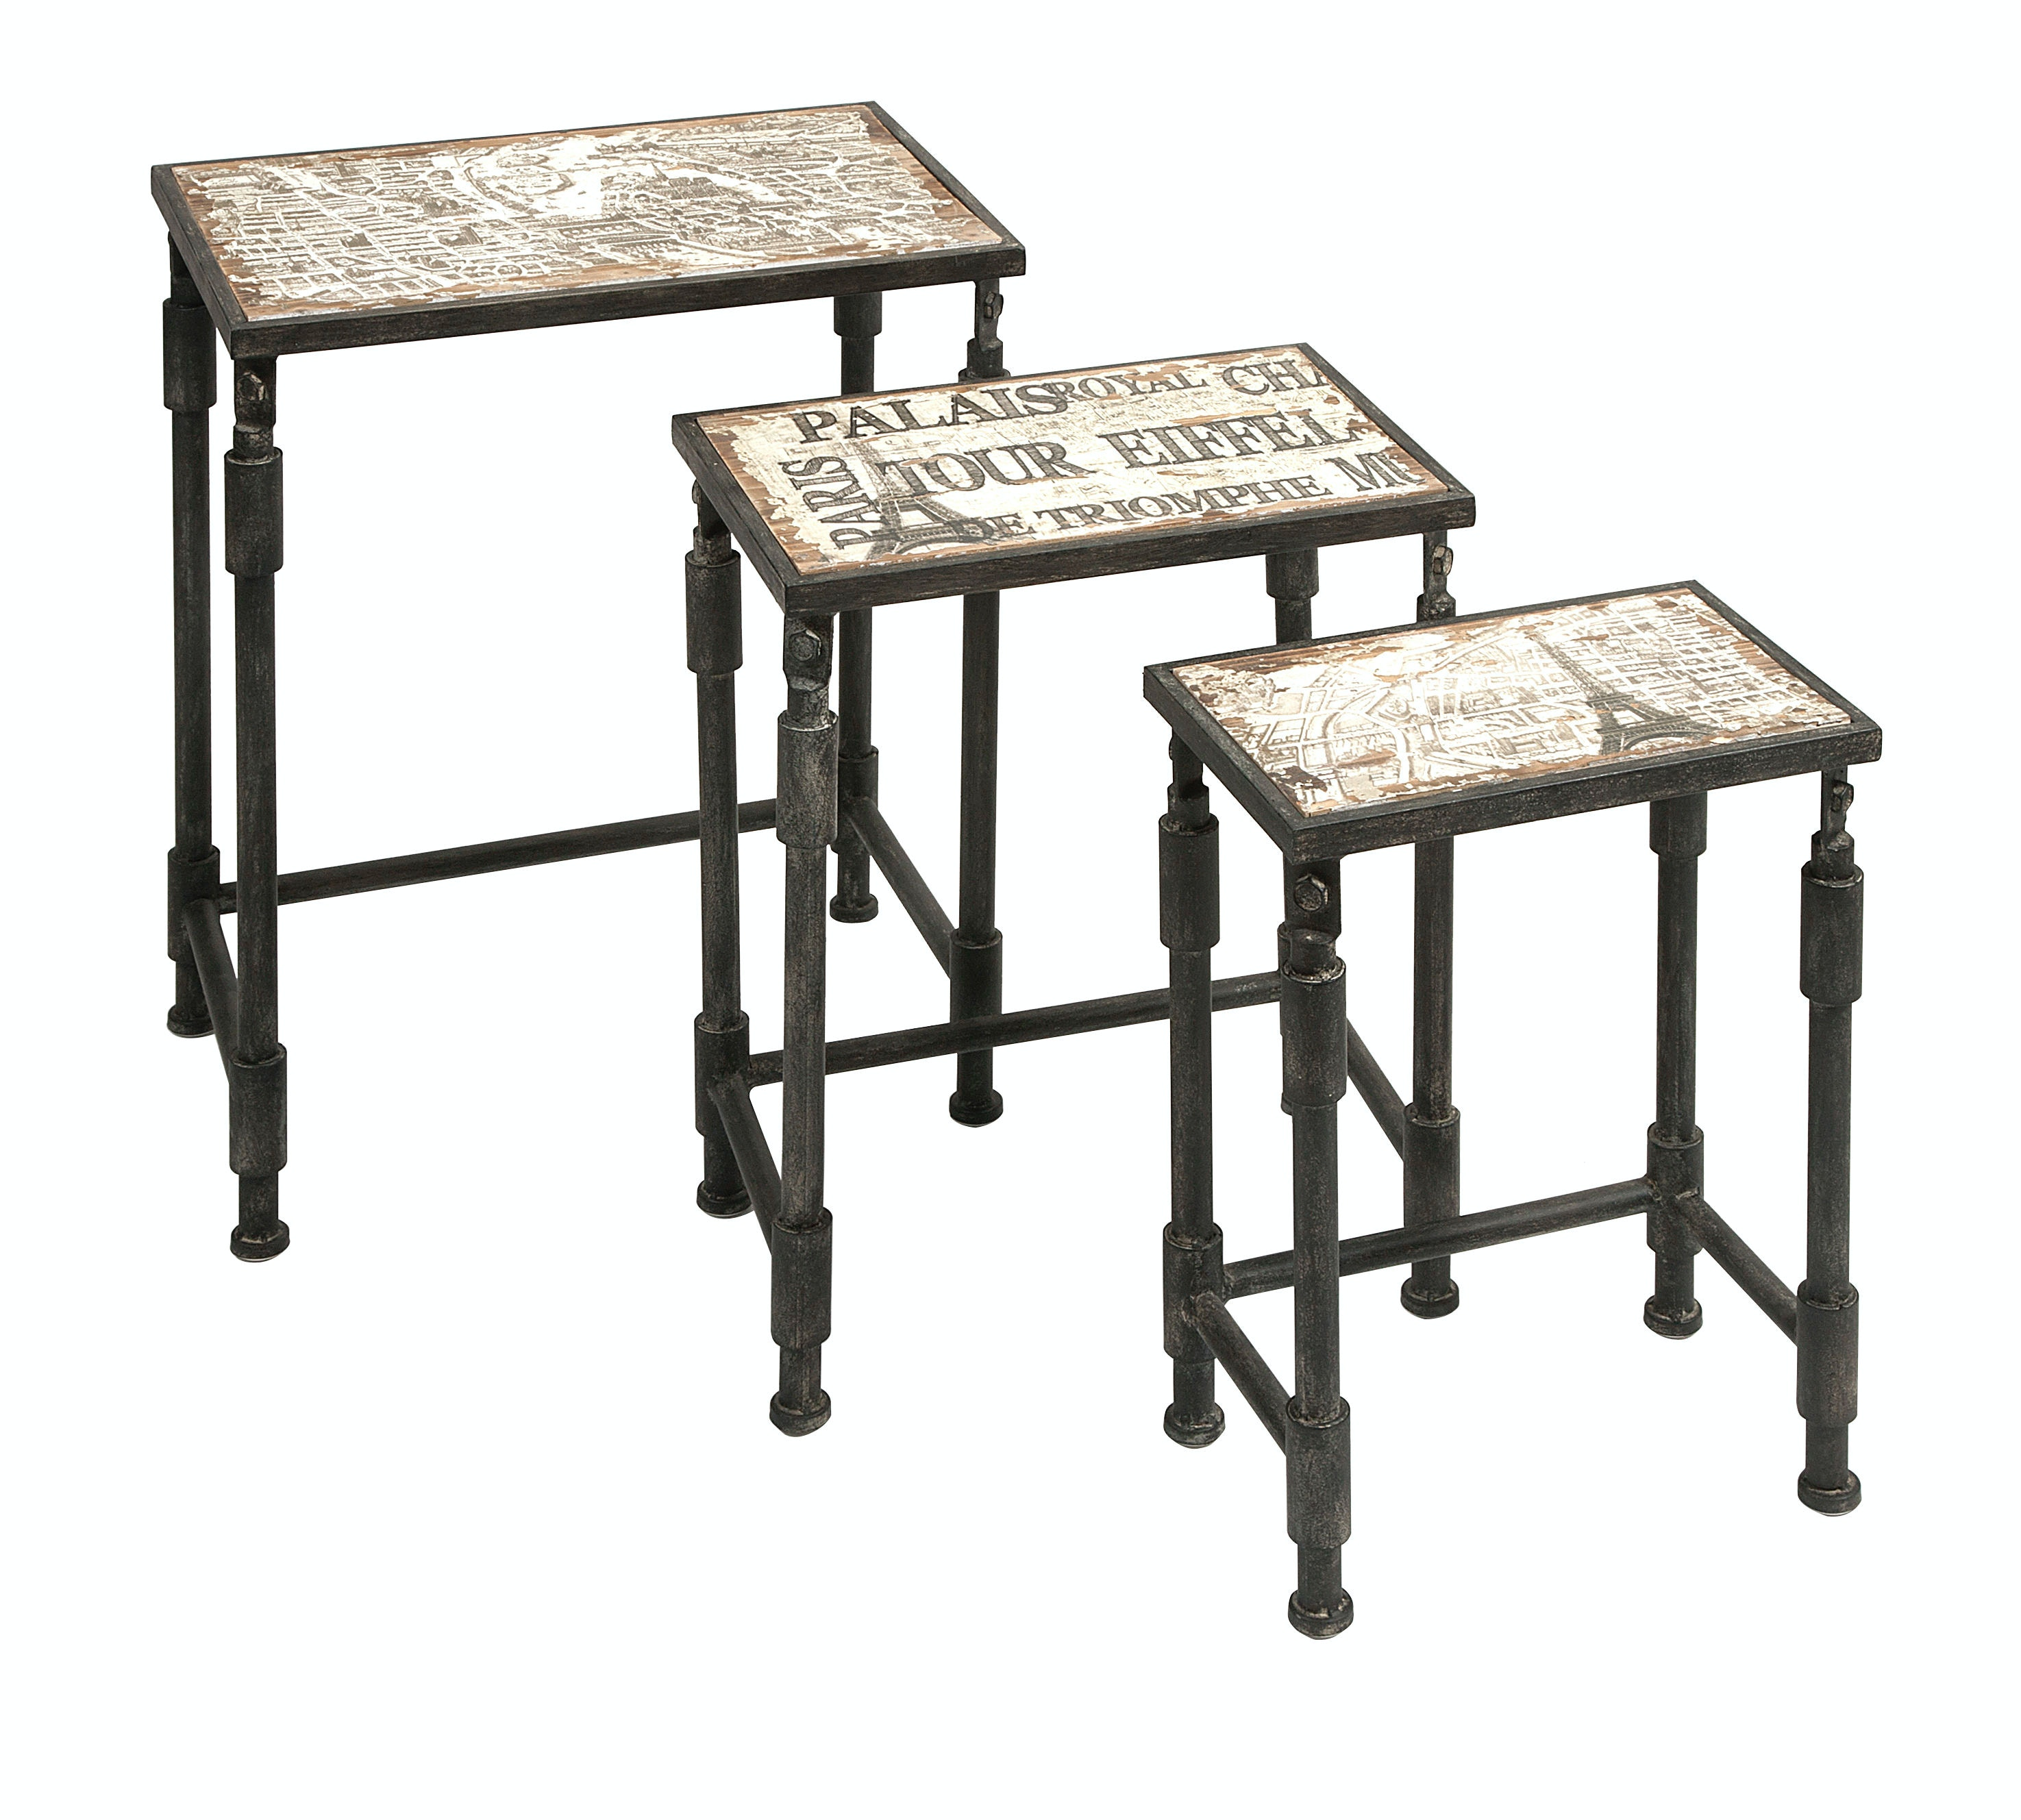 Set of 4 Frenchi Home Furnishing Nesting Tables Home Living